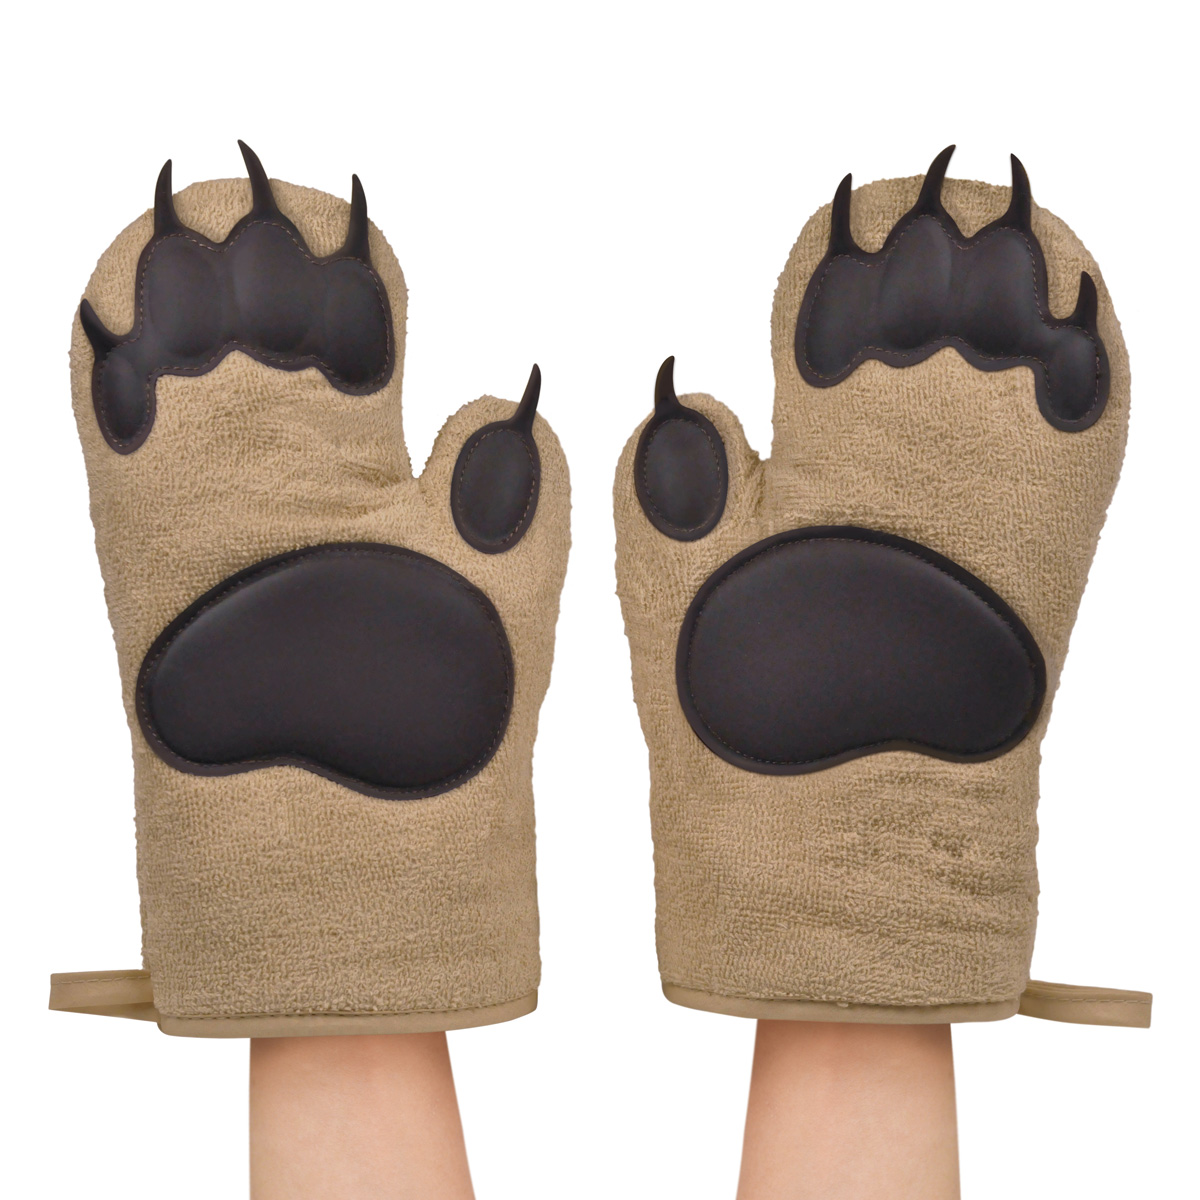 To protect your hands from the heat you need some quality mitts and we know which are the best oven mitts Cool Touch Flame Temperature Protection Oven.